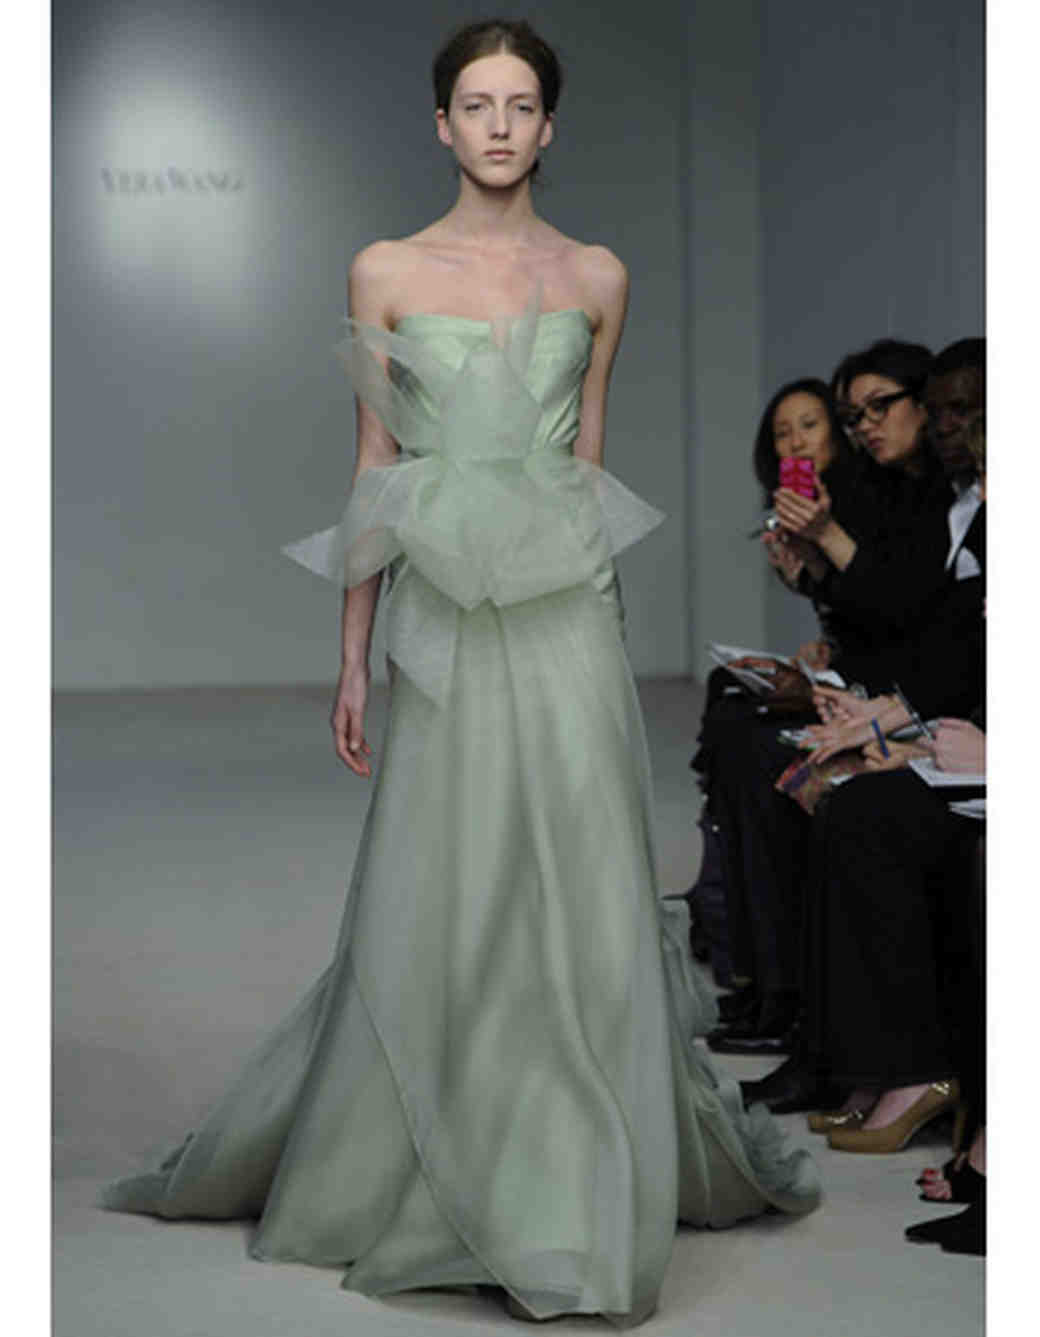 Colorful wedding dresses from spring 2012 bridal fashion week vera wang junglespirit Images